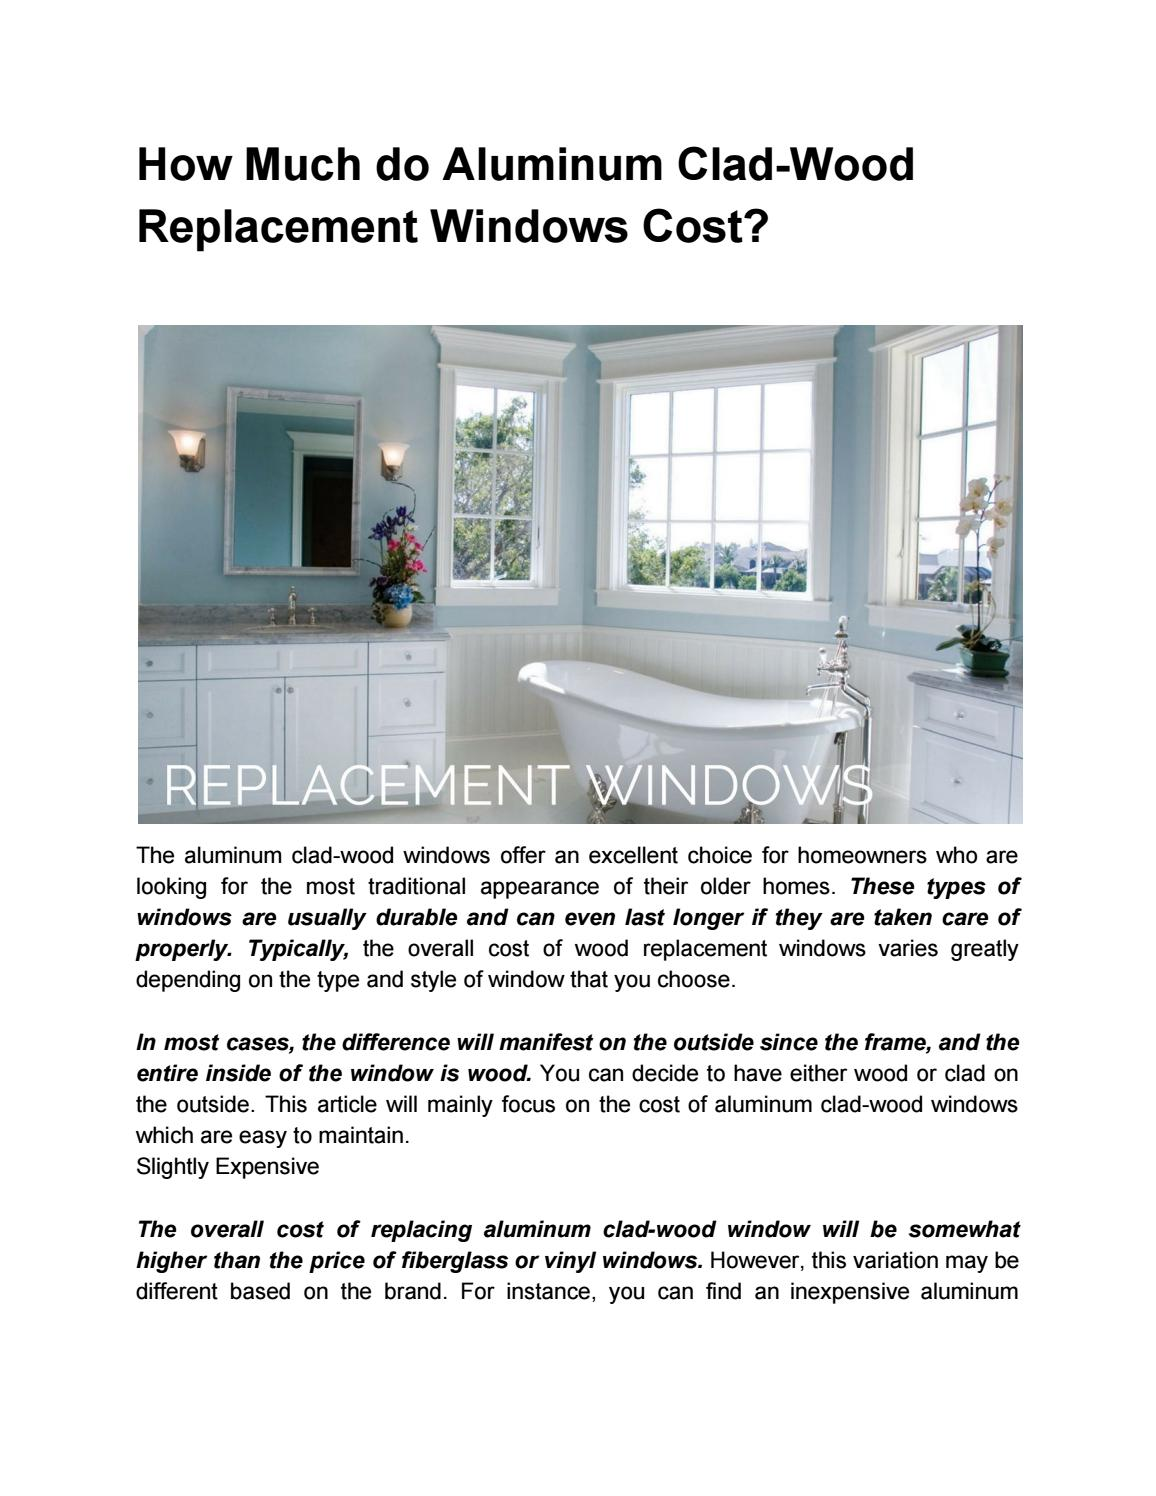 fiberglass windows cost casement how much do aluminum clad wood replacement windows cost by prowriter4life issuu